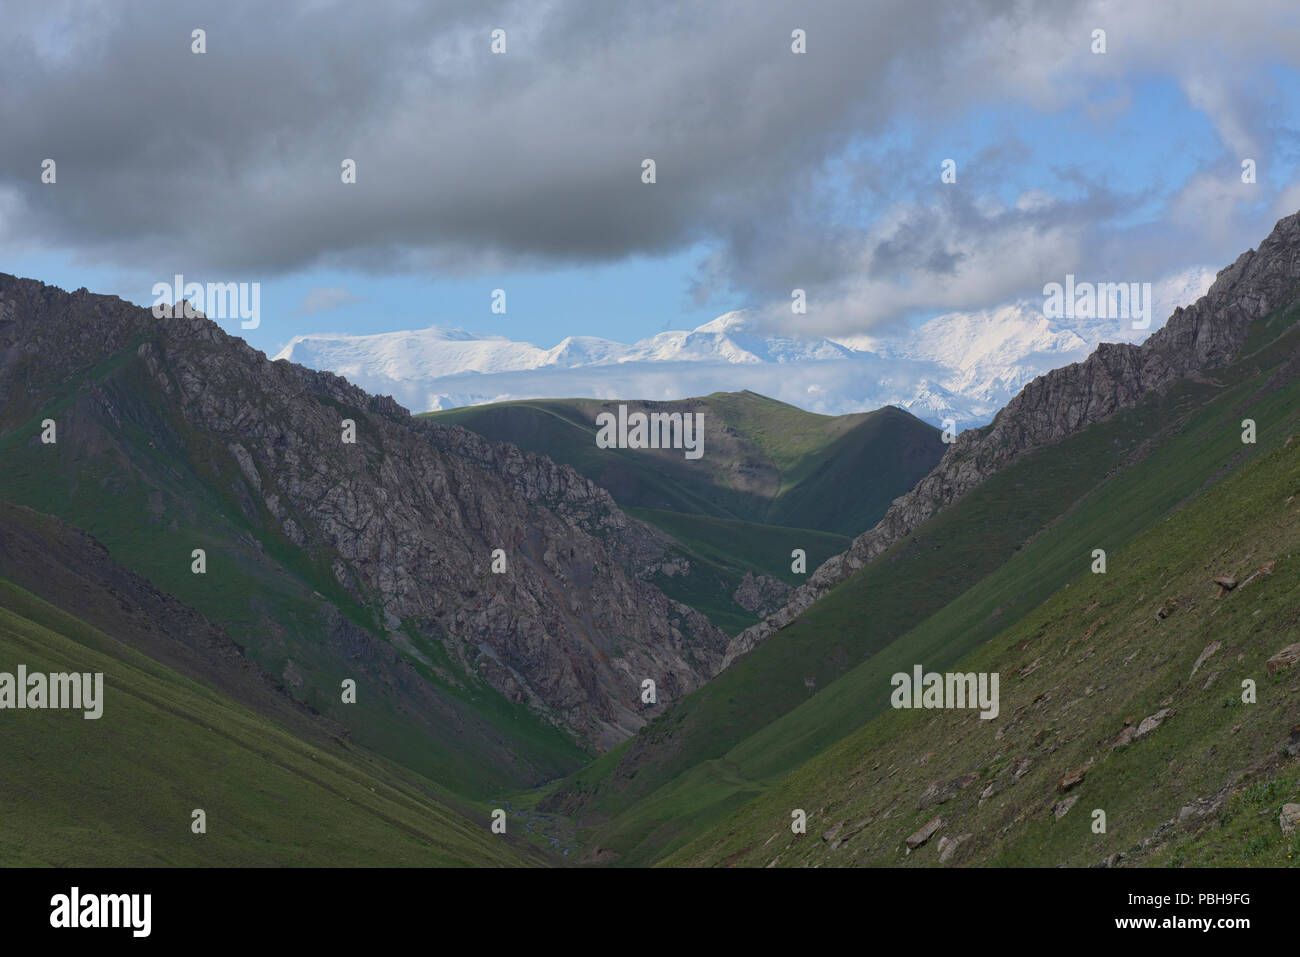 View of 7,000 metre Peak Lenin and the high Pamirs on the epic Heights of Alay route, Alay, Kyrgyzstan Stock Photo